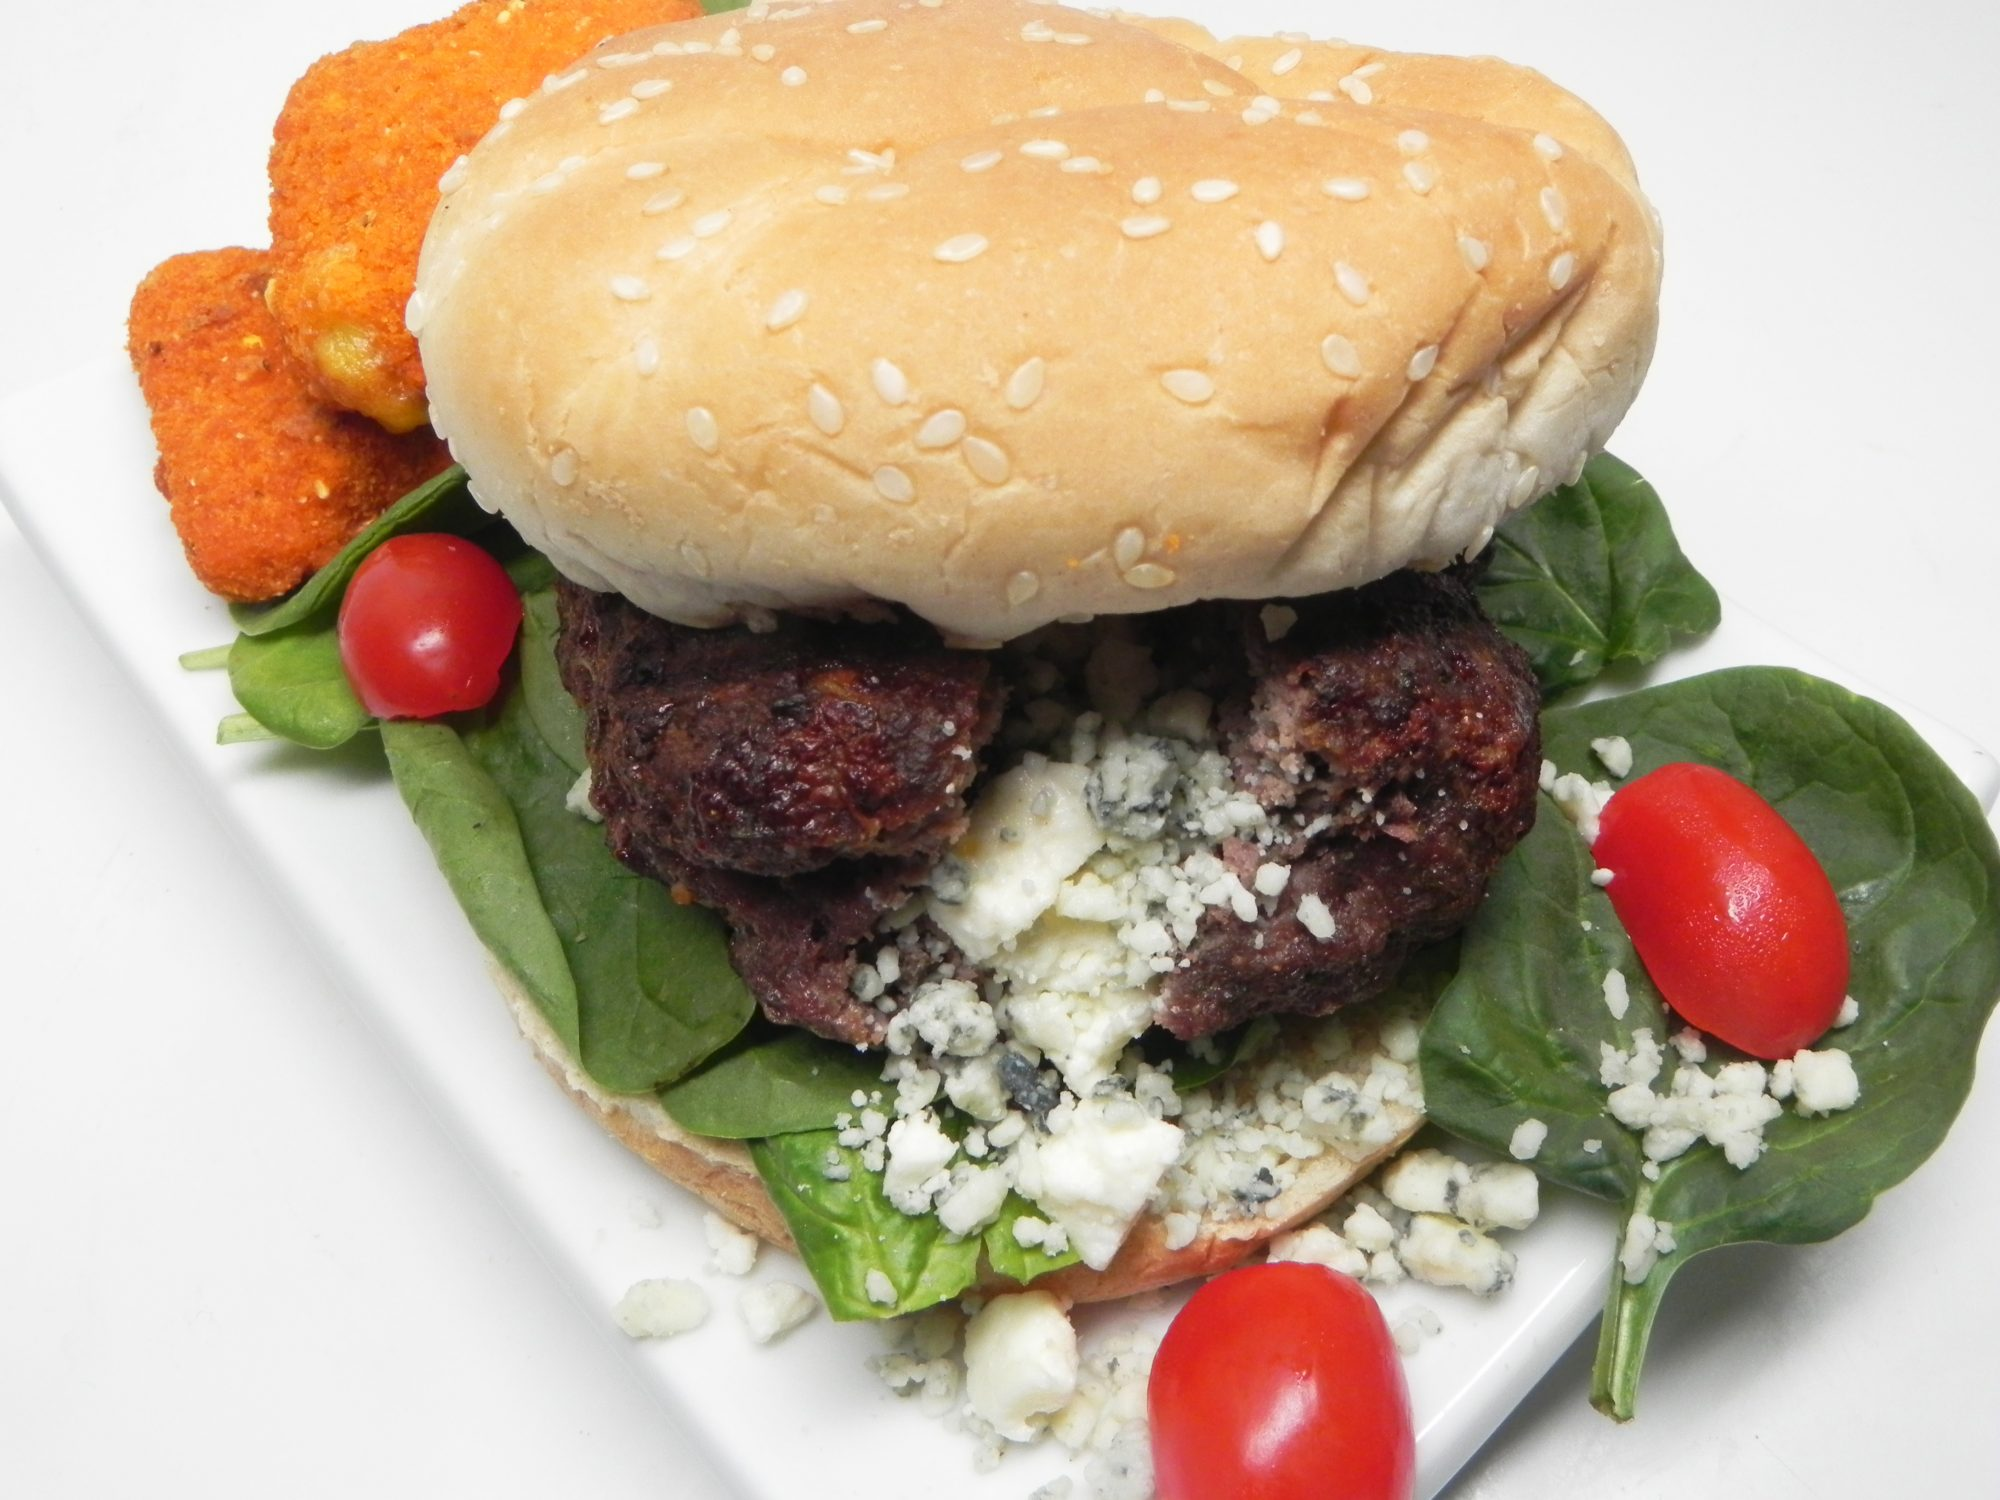 cheese stuffed burger on bun with spinach